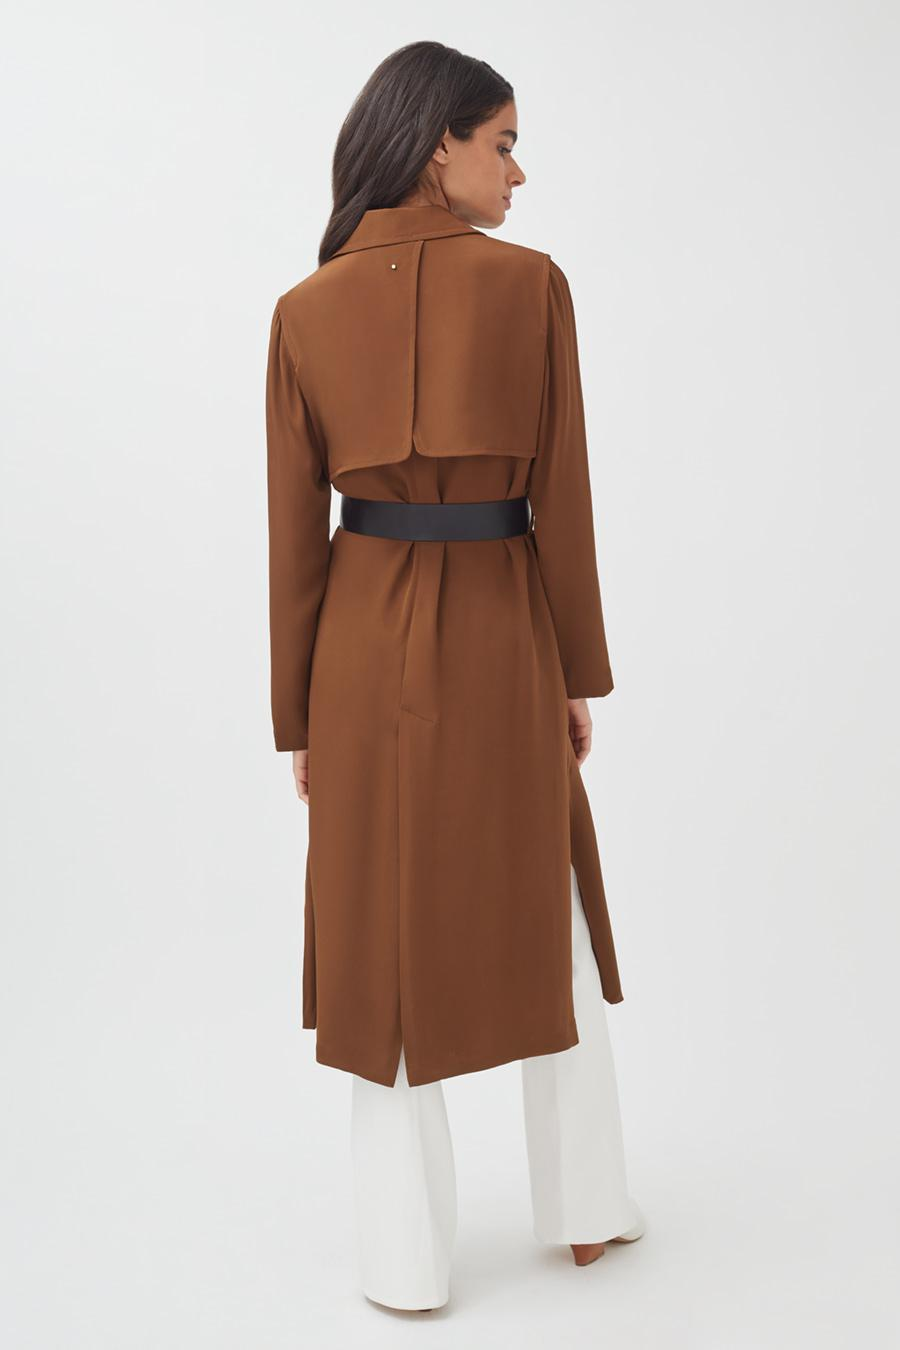 Women's Silk Classic Trench in Chestnut   Size: 2